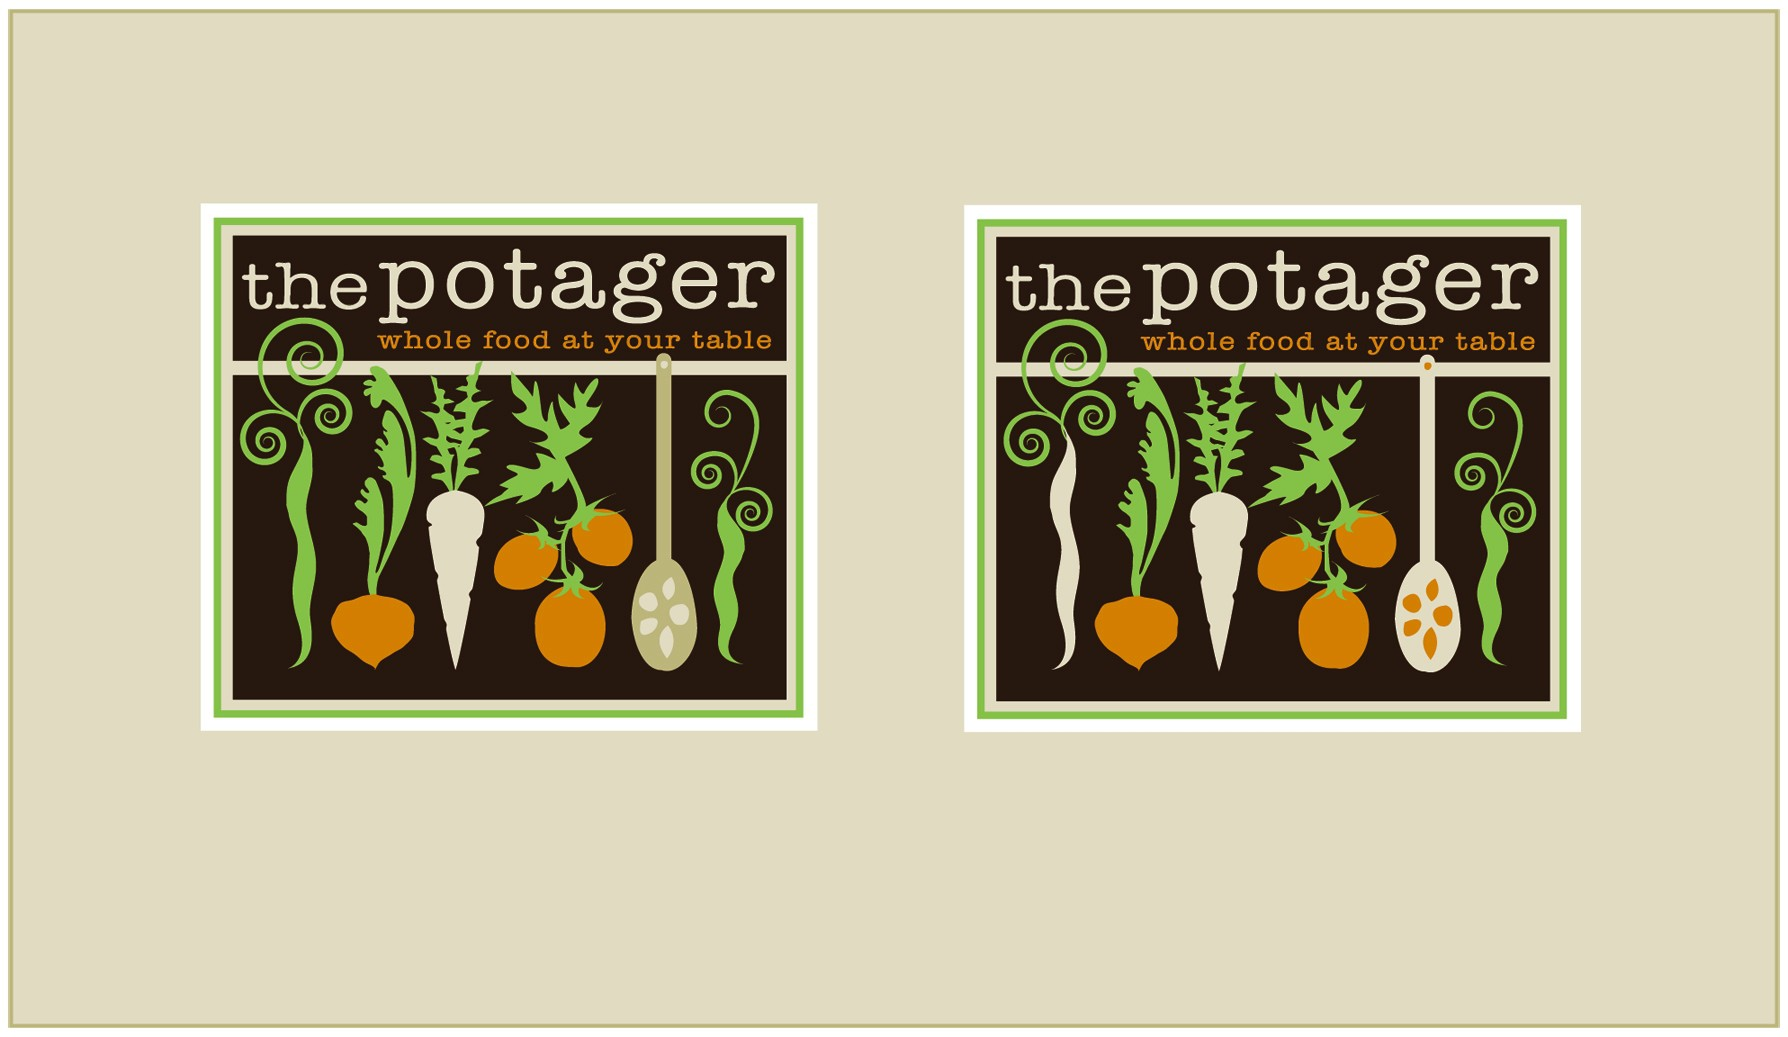 New logo wanted for the potager